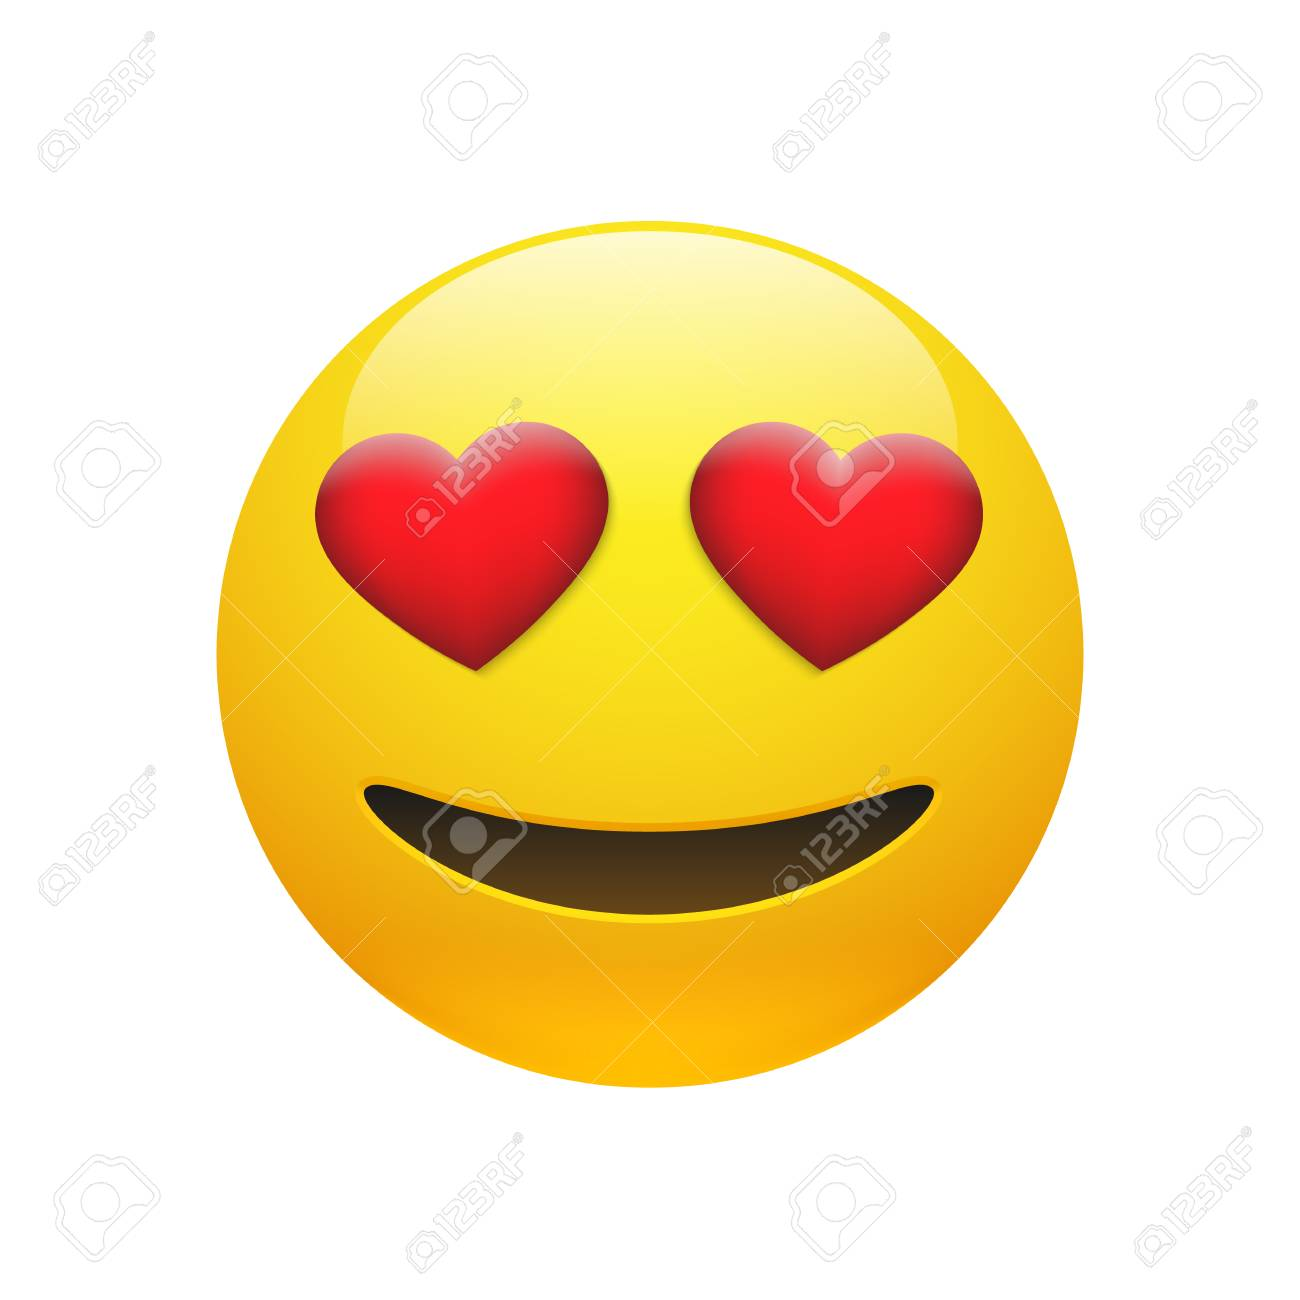 Emoji vector yellow stupid smiley face with red heart eyes and mouth on white background